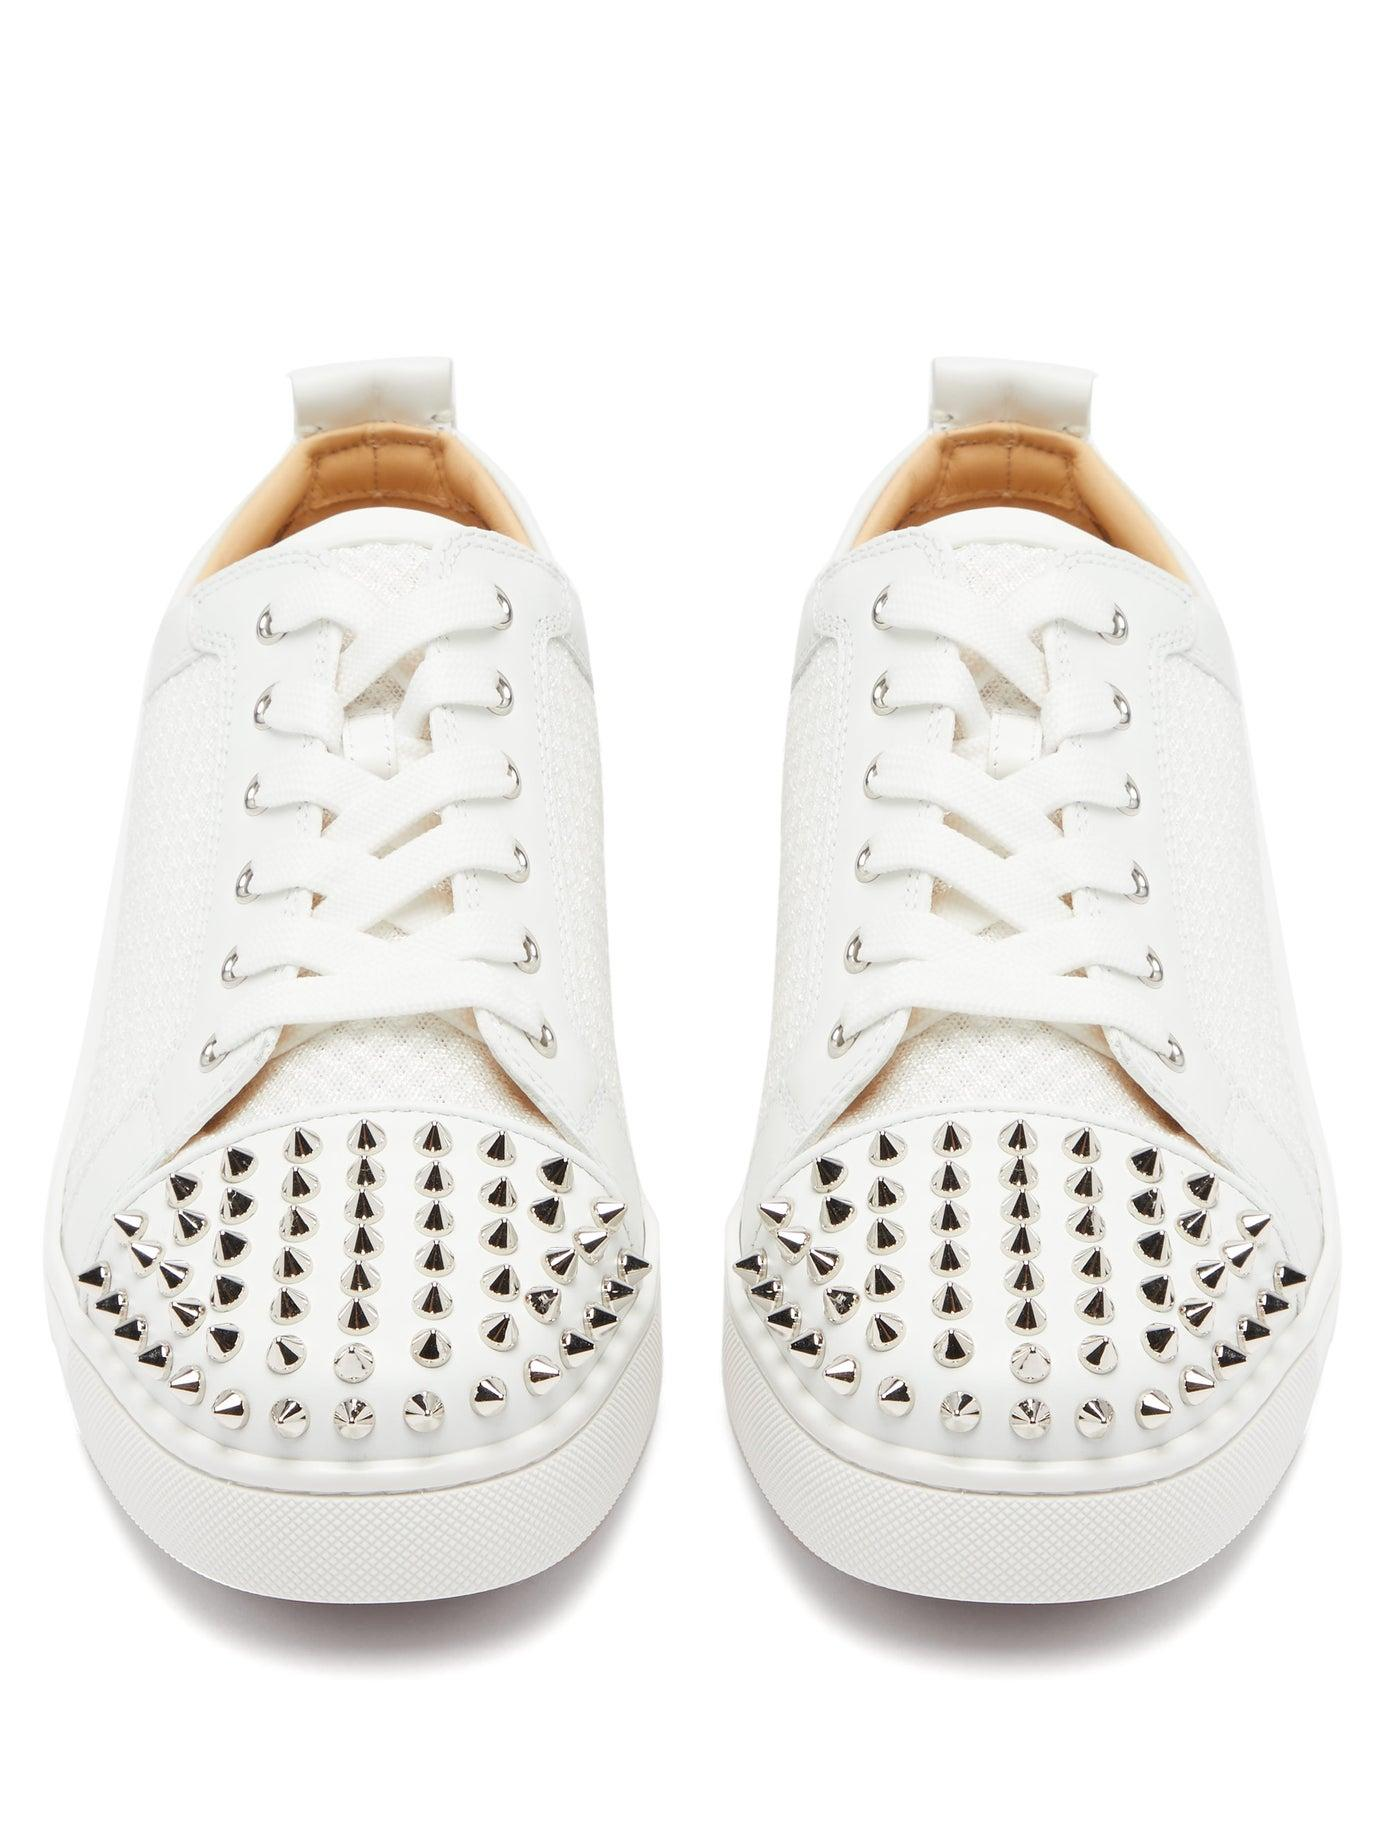 87c4c630f6c Men's White Ac Louis Junior Spikes Mesh And Leather Sneakers